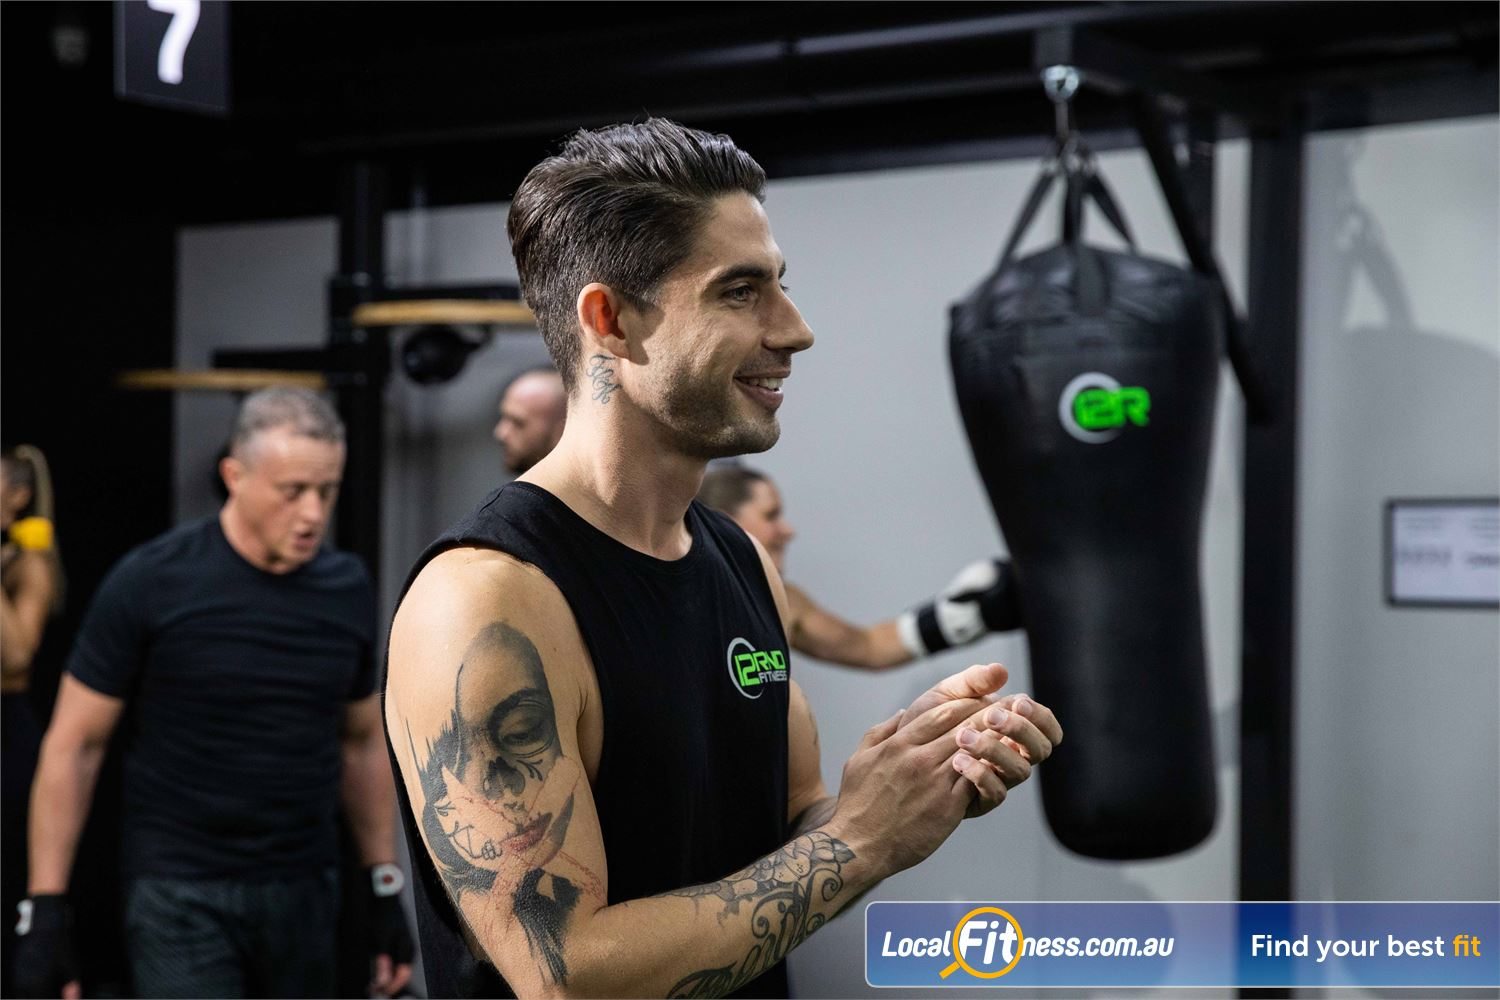 12 Round Fitness Camberwell Our Camberwell personal trainers will take you through 12 rounds of fitness.